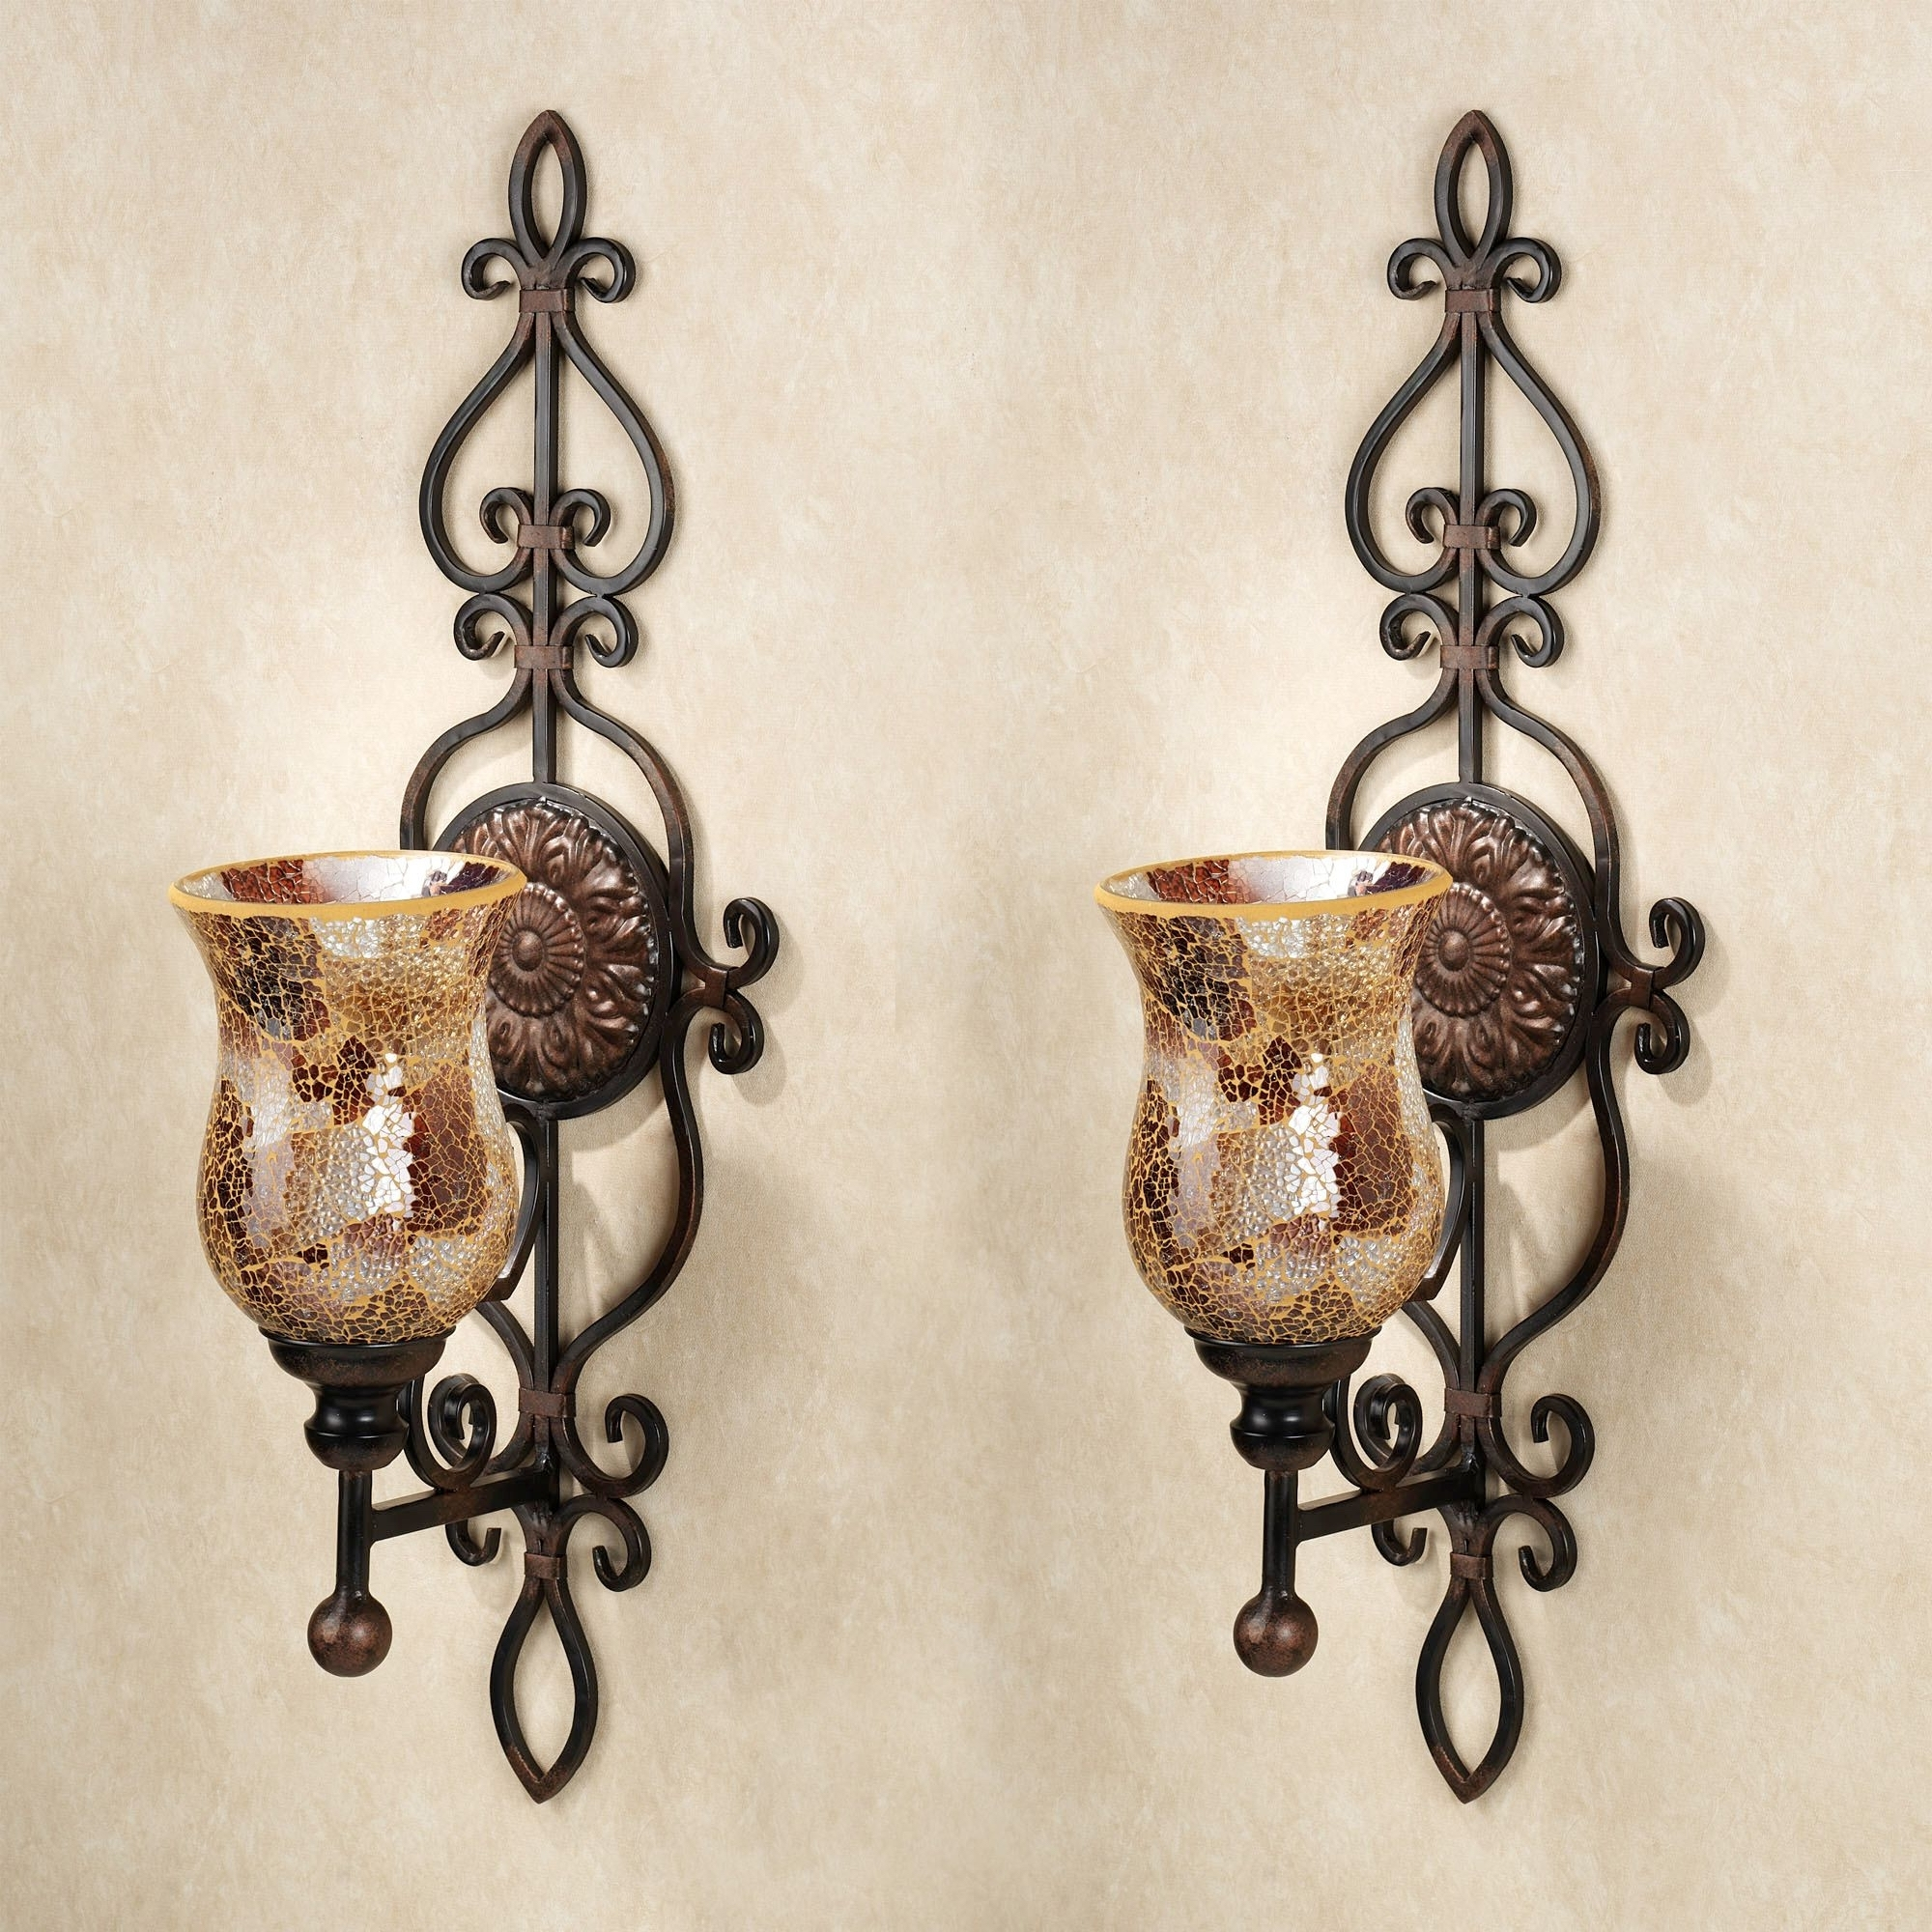 Ireland Metal Wall Art Within Latest Hanging Wall Candle Sconces Fresh Home Concept Wall Sconces For (View 6 of 15)